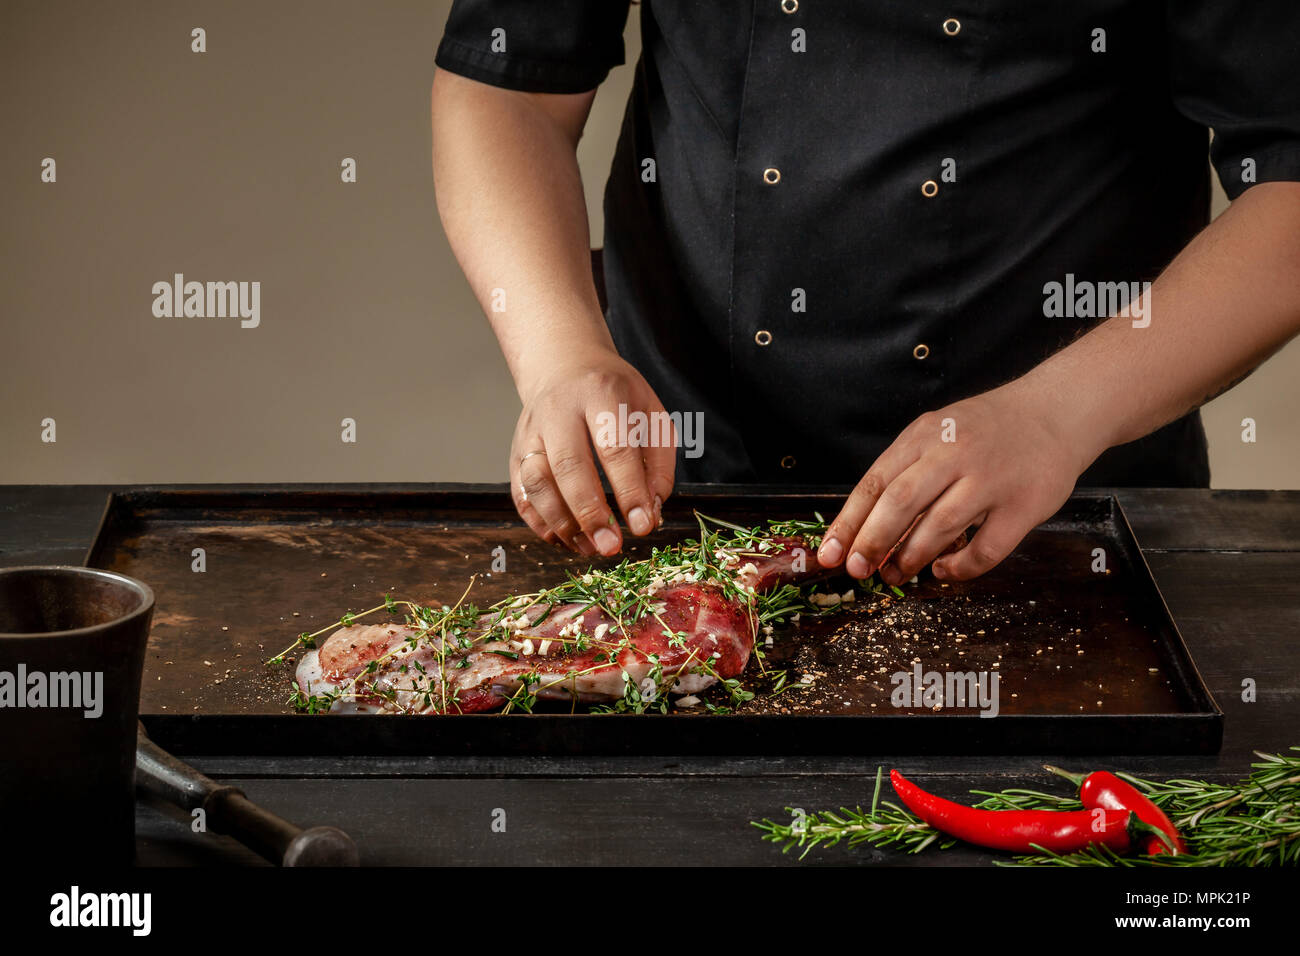 Male chef rubbing raw lamb shanks with greens and spices on stone tray on wooden table. Chef cooking appetizing shank of lamb. Training, master class, - Stock Image